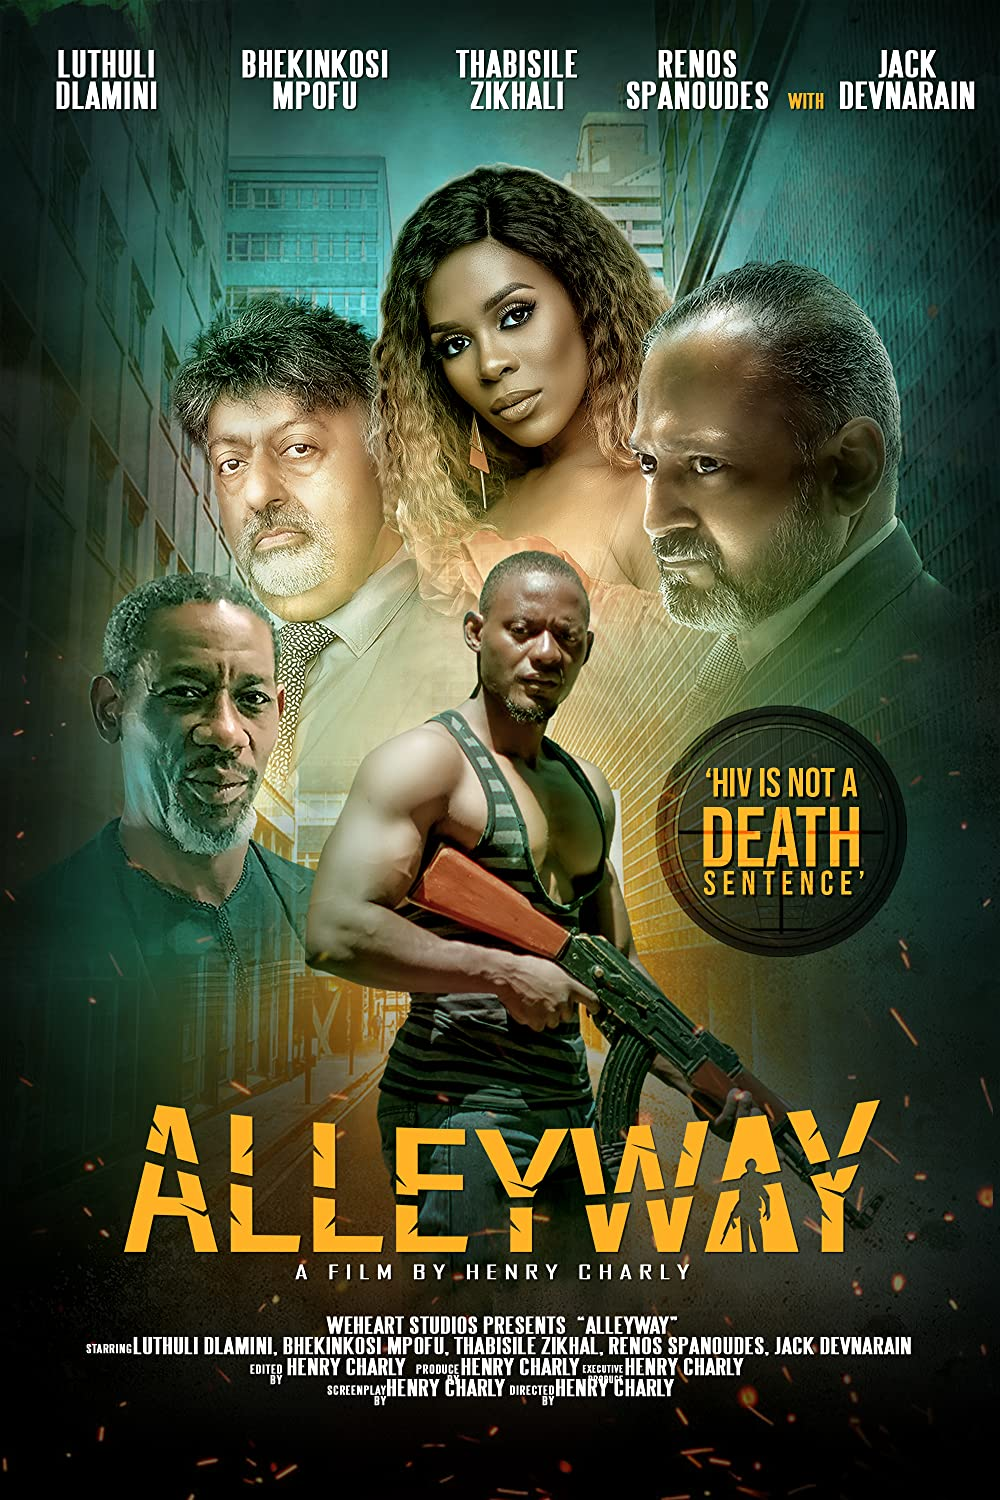 Download Alleyway (2021) Tamil Dubbed (Voice Over) & English [Dual Audio] WebRip 720p [1XBET] Full Movie Online On 1xcinema.com